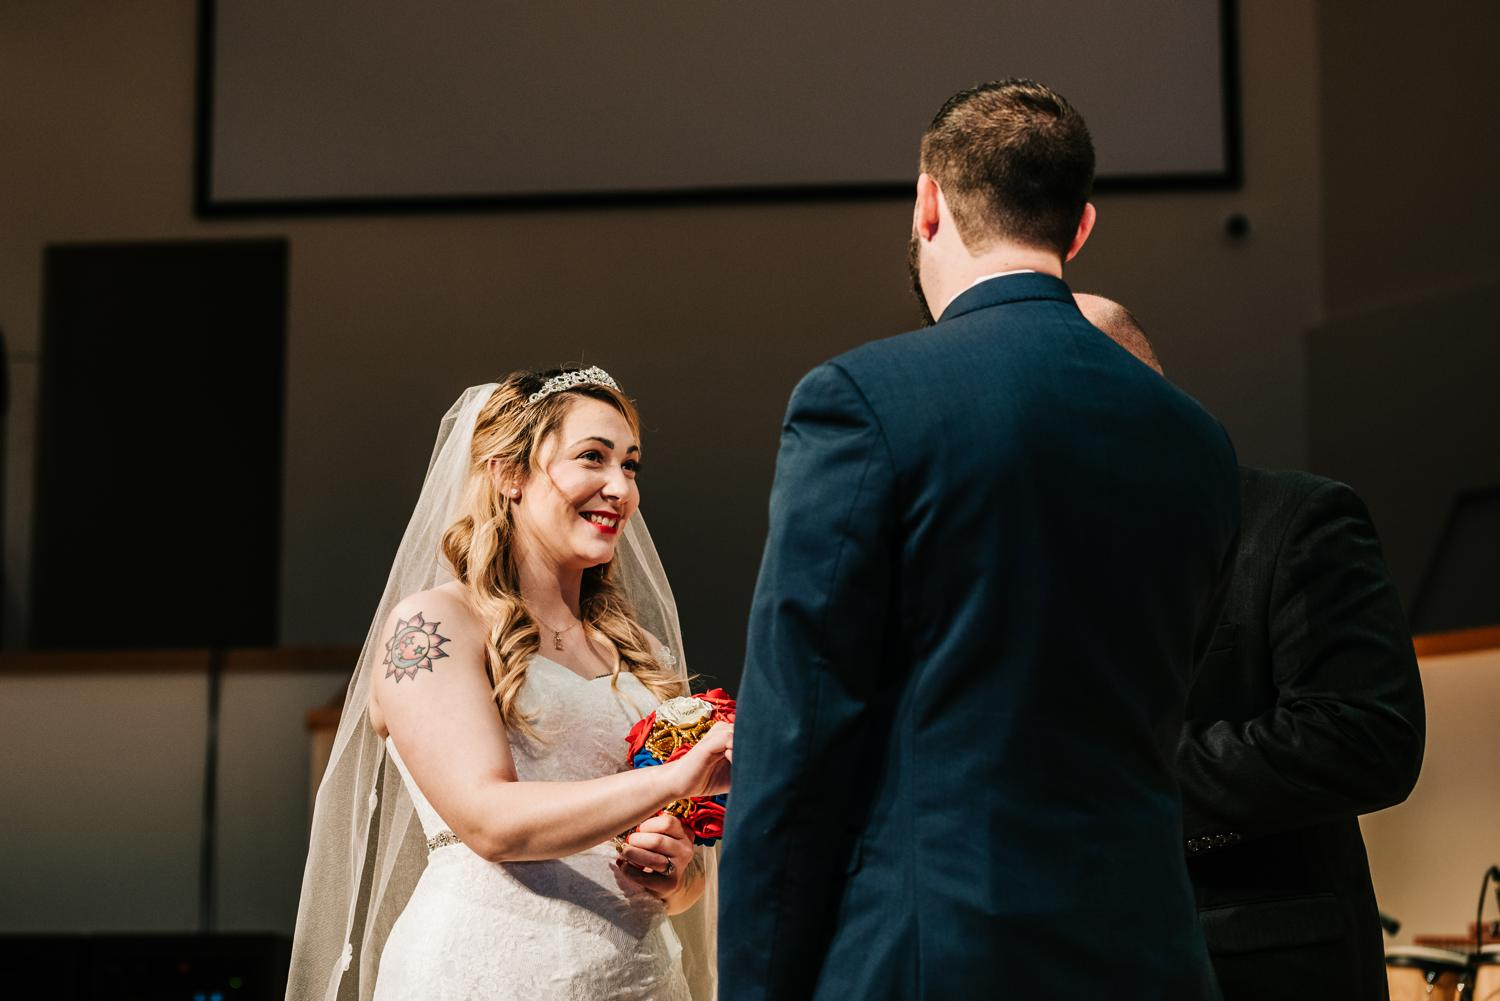 Bride smiling at groom during vows